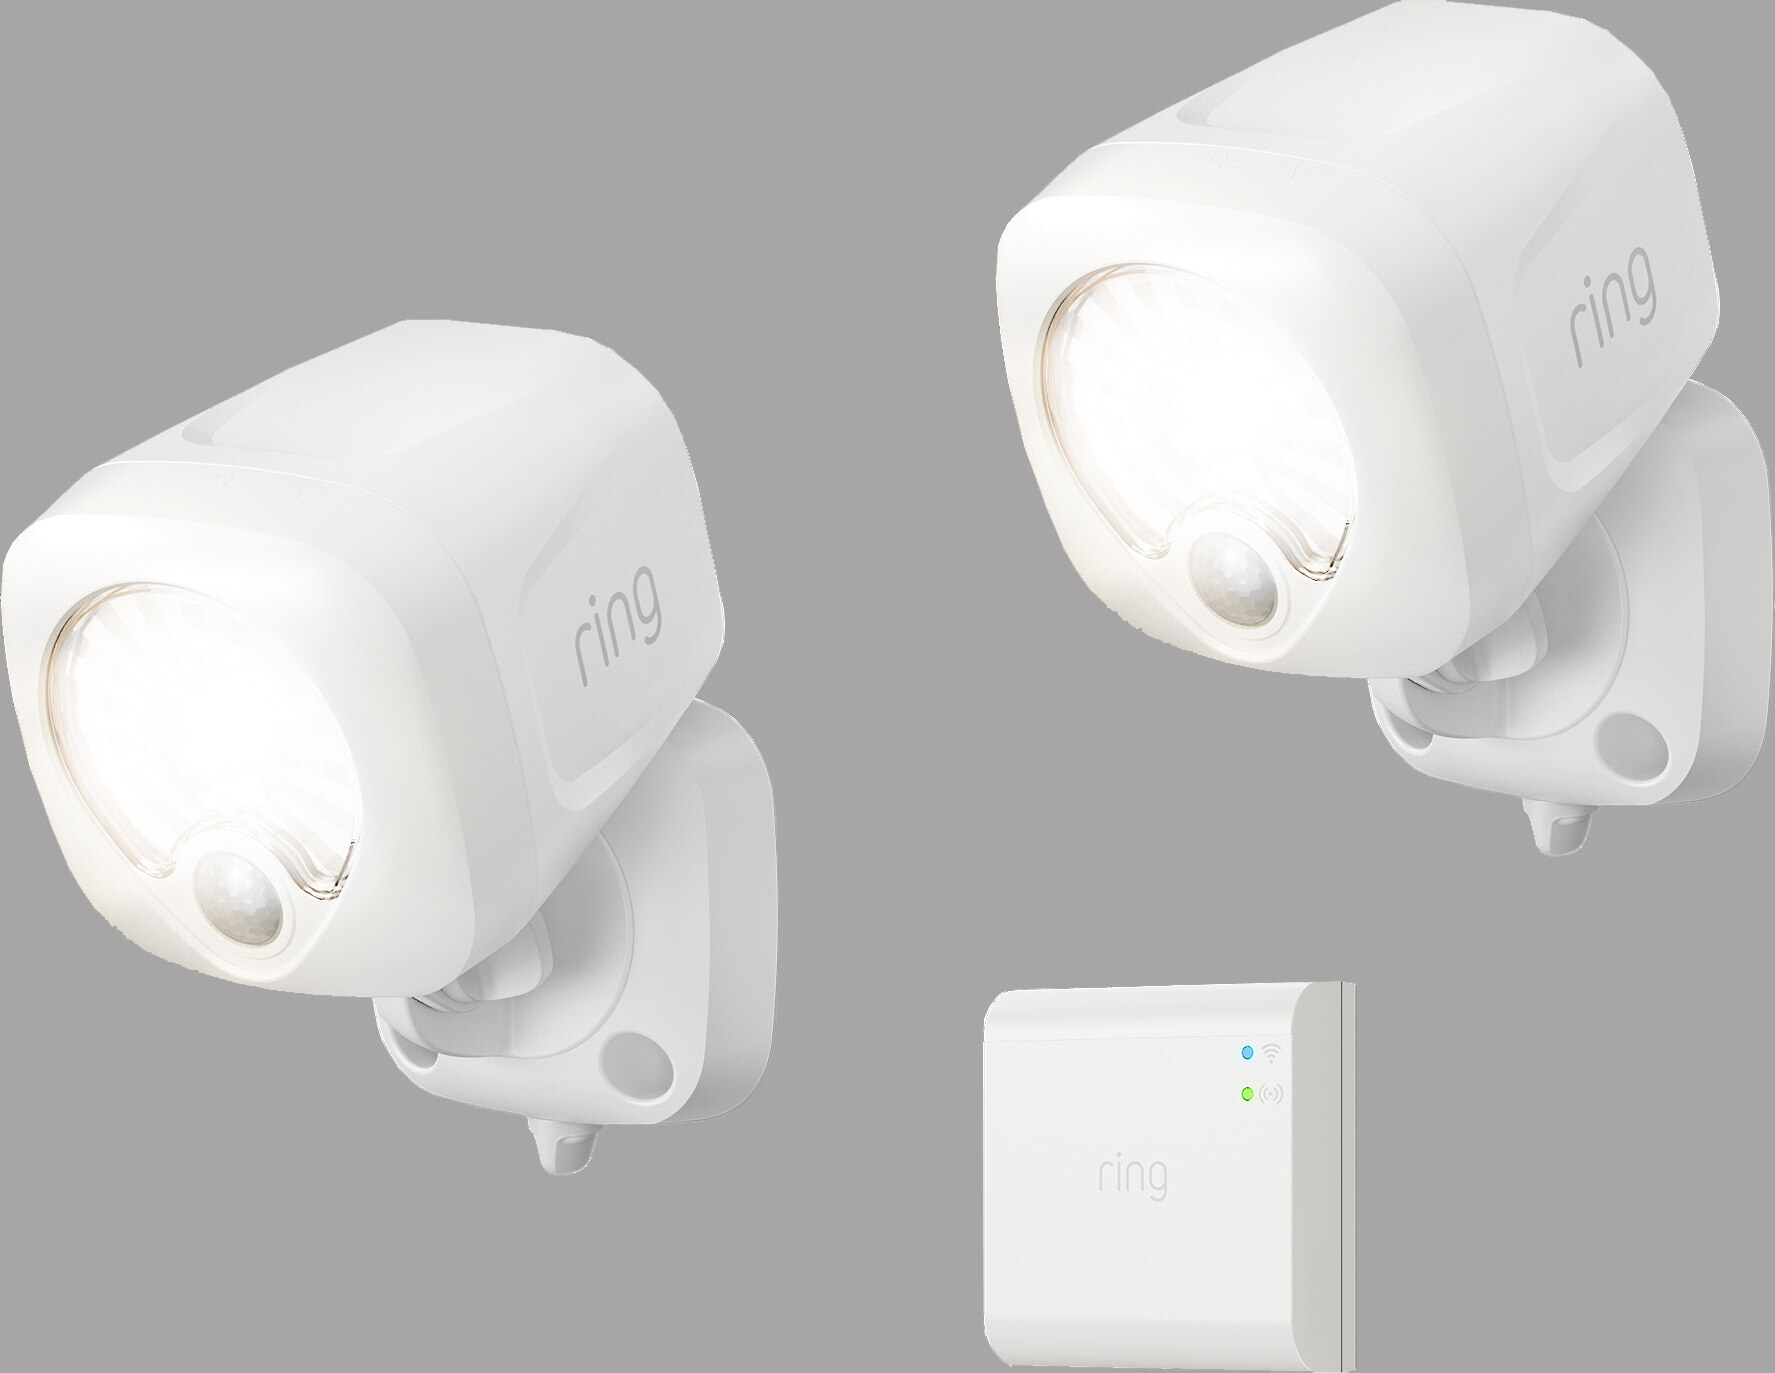 ring smart lighting spotlight 2 pack bridge white two battery powered led spotlights and hub that adds smart control at crutchfield